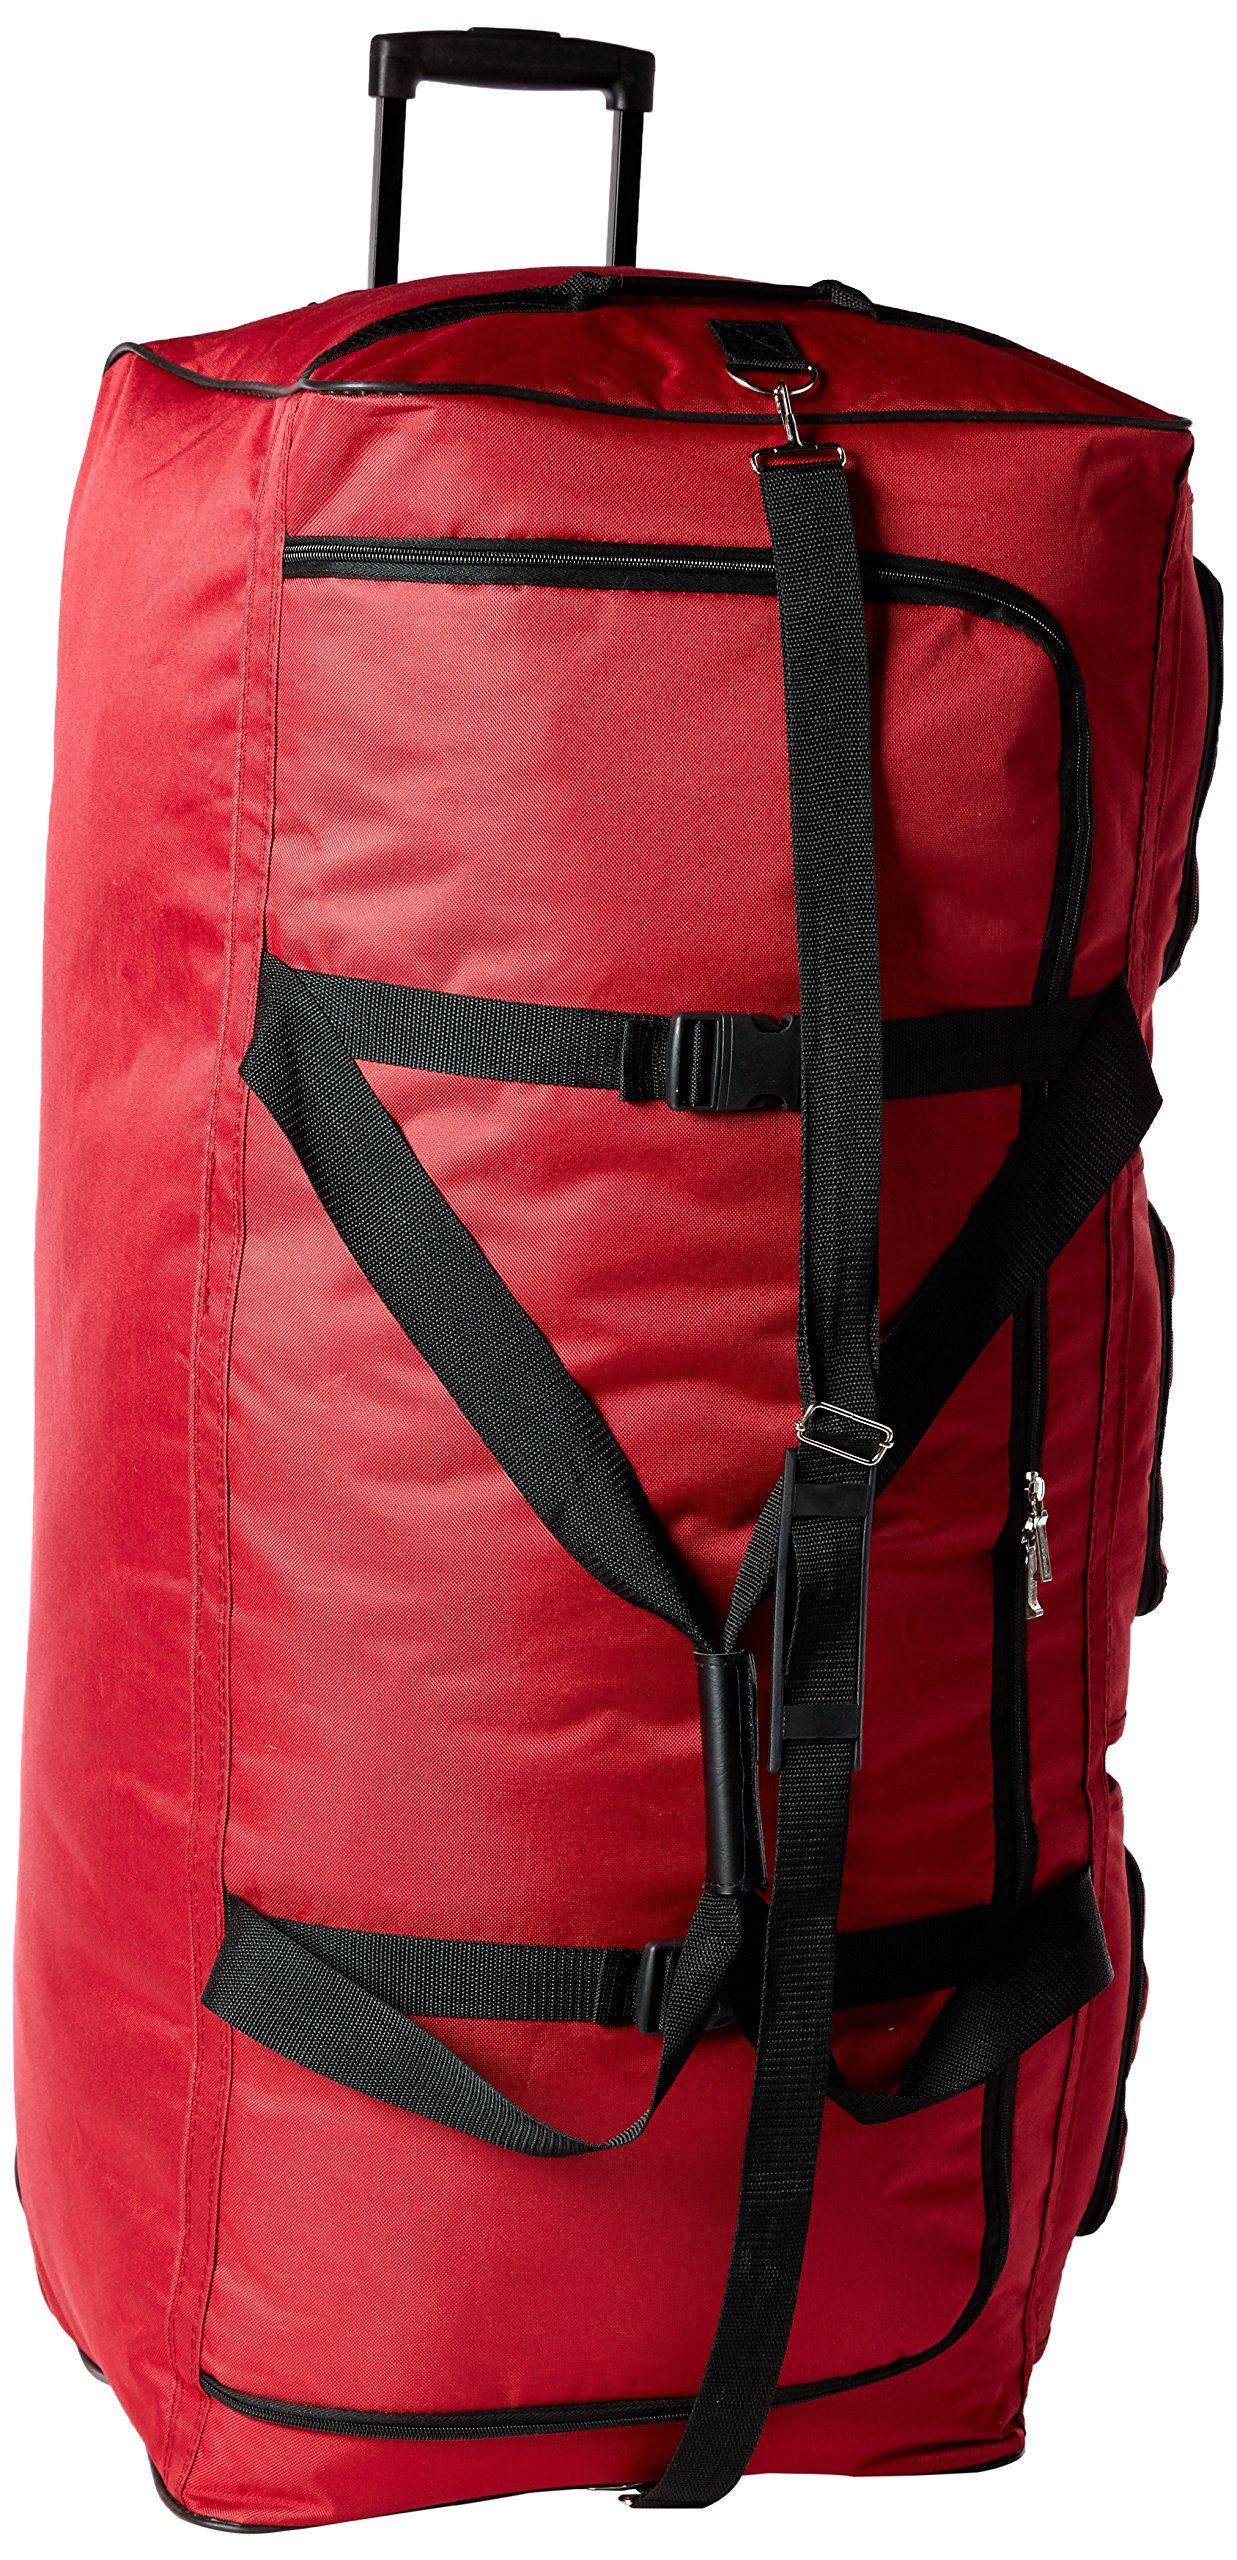 Rockland Luggage 40 Inch Rolling Duffle Bag, Red, X-Large